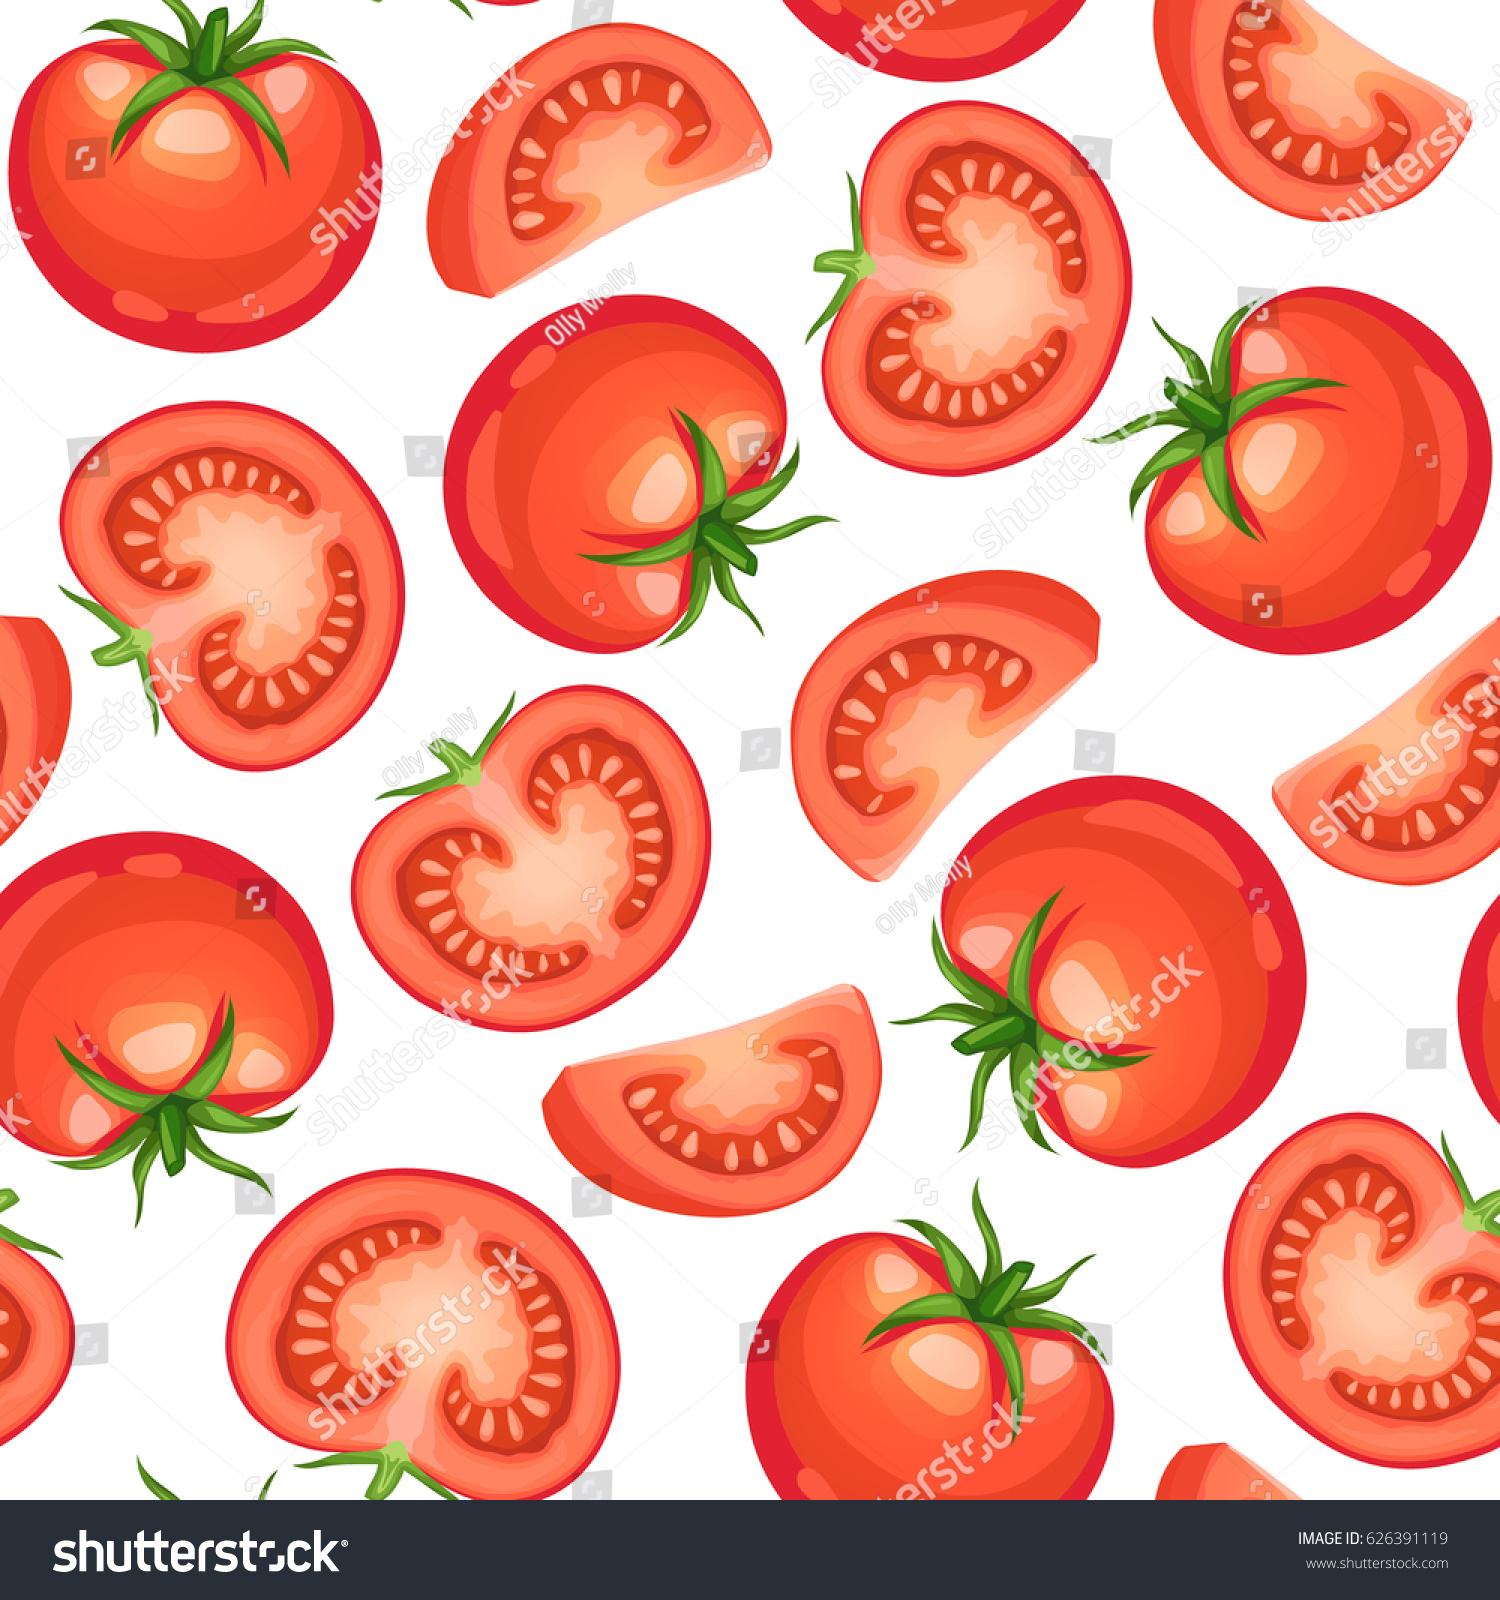 Seamless background from chopped ripe tomatoes isolated on white background.  Fresh tomato slices pattern.